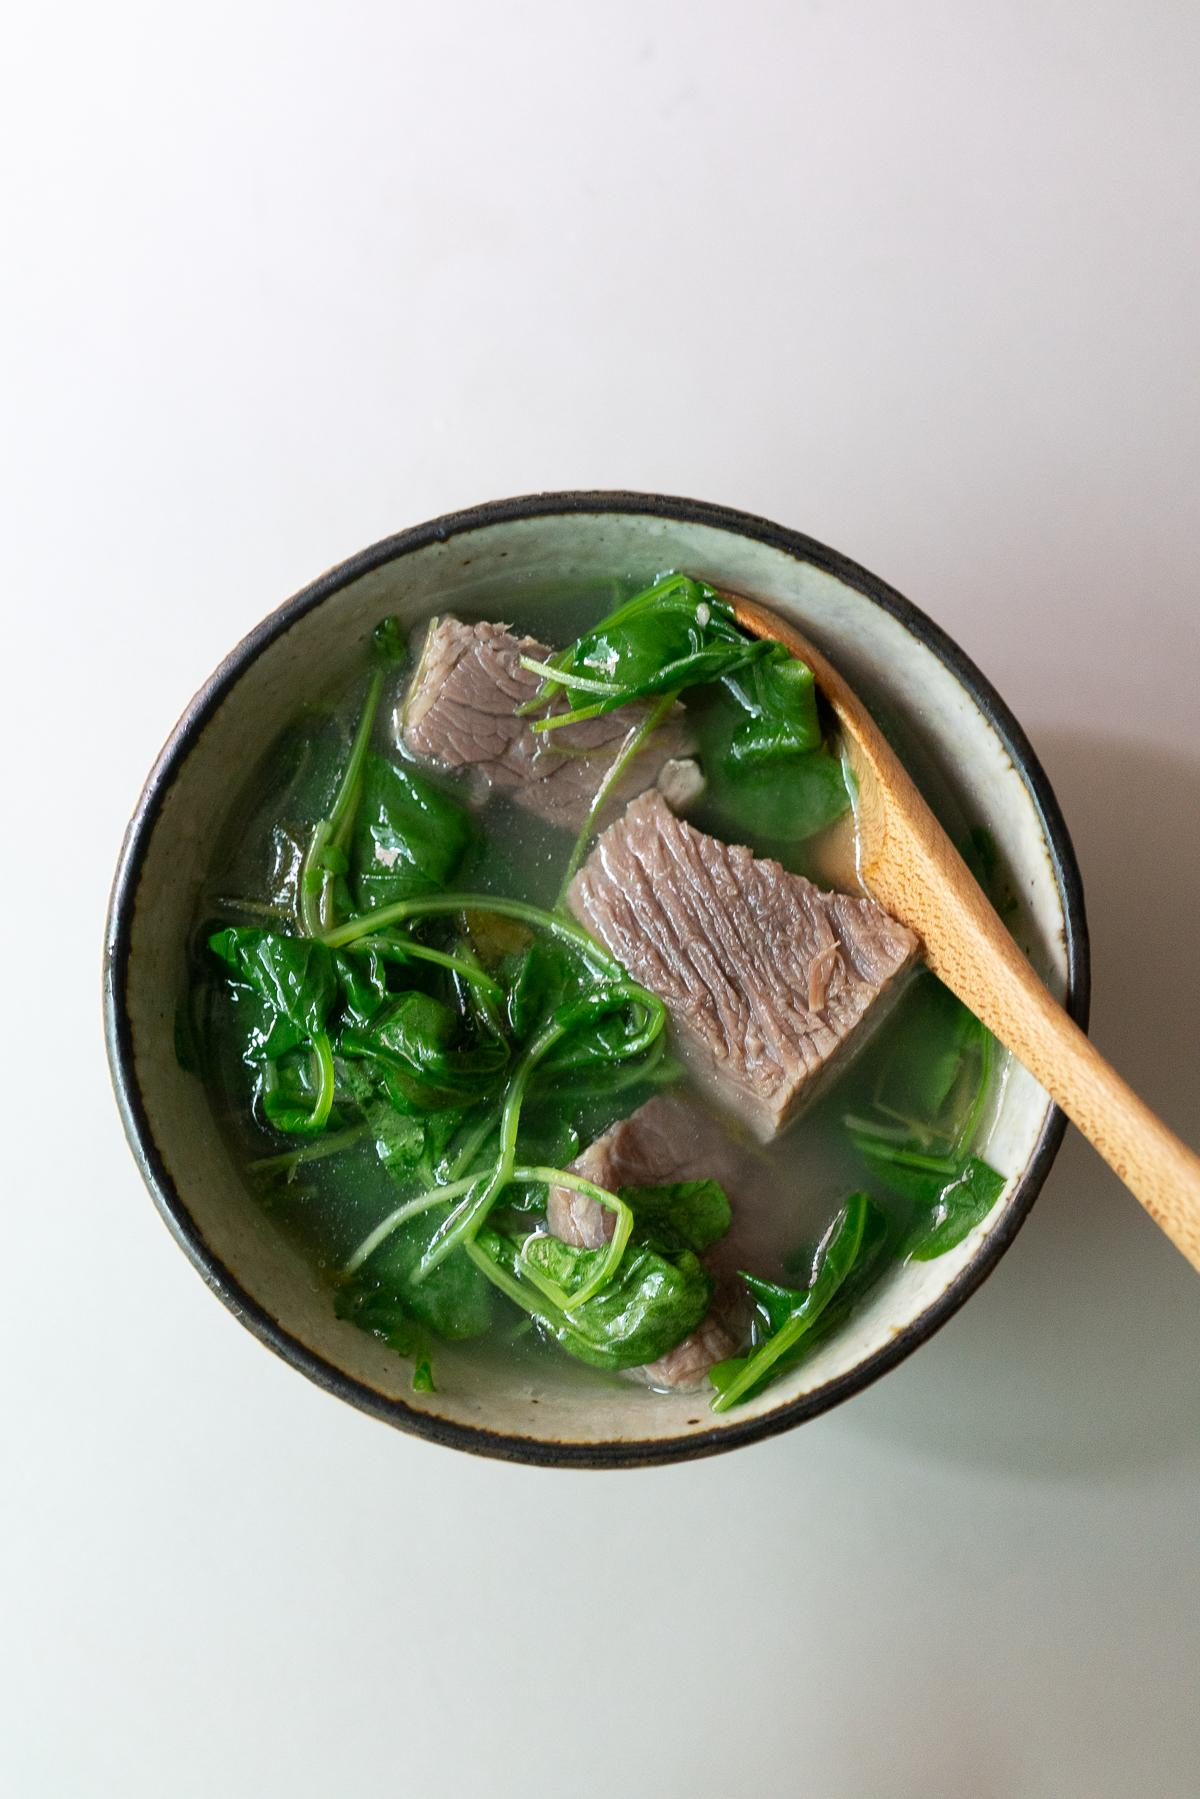 Salt Beef Watercress in a bowl, ready to eat